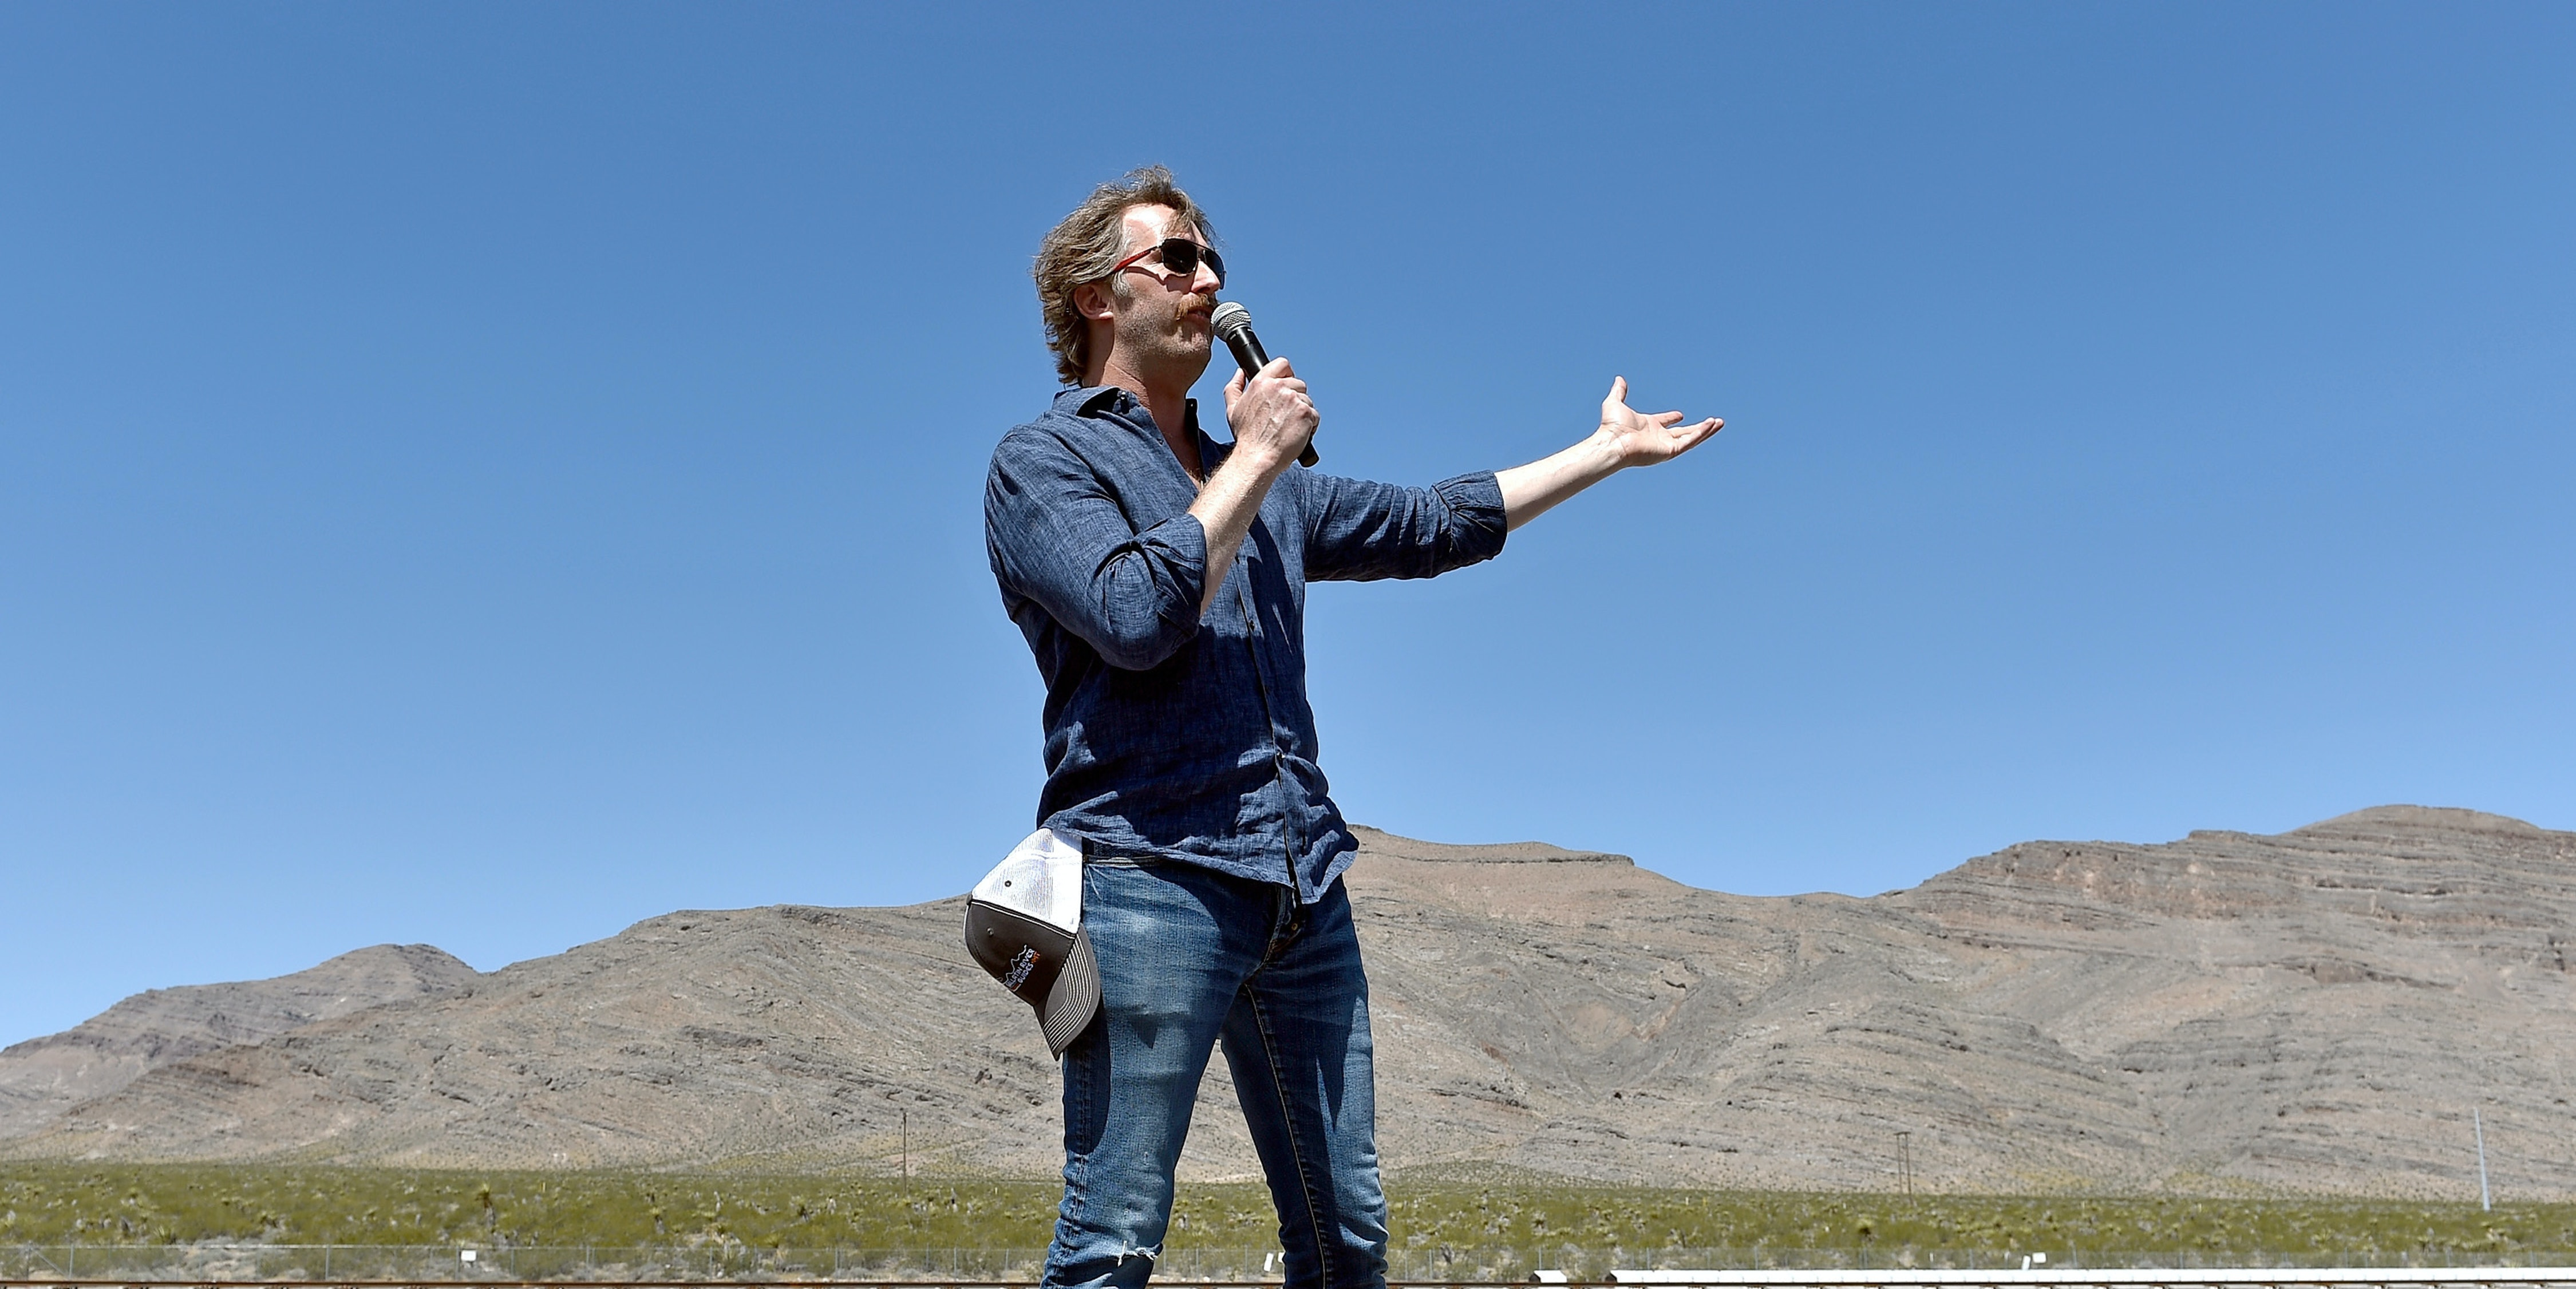 NORTH LAS VEGAS, NV - MAY 11:  Hyperloop One Co-Founder & Chief Technology Officer Brogan BamBrogan speaks during the first test of the propulsion system at the Hyperloop One Test and Safety site on May 11, 2016 in North Las Vegas, Nevada. The company plans to create a fully operational hyperloop system by 2020.  (Photo by David Becker/Getty Images,)